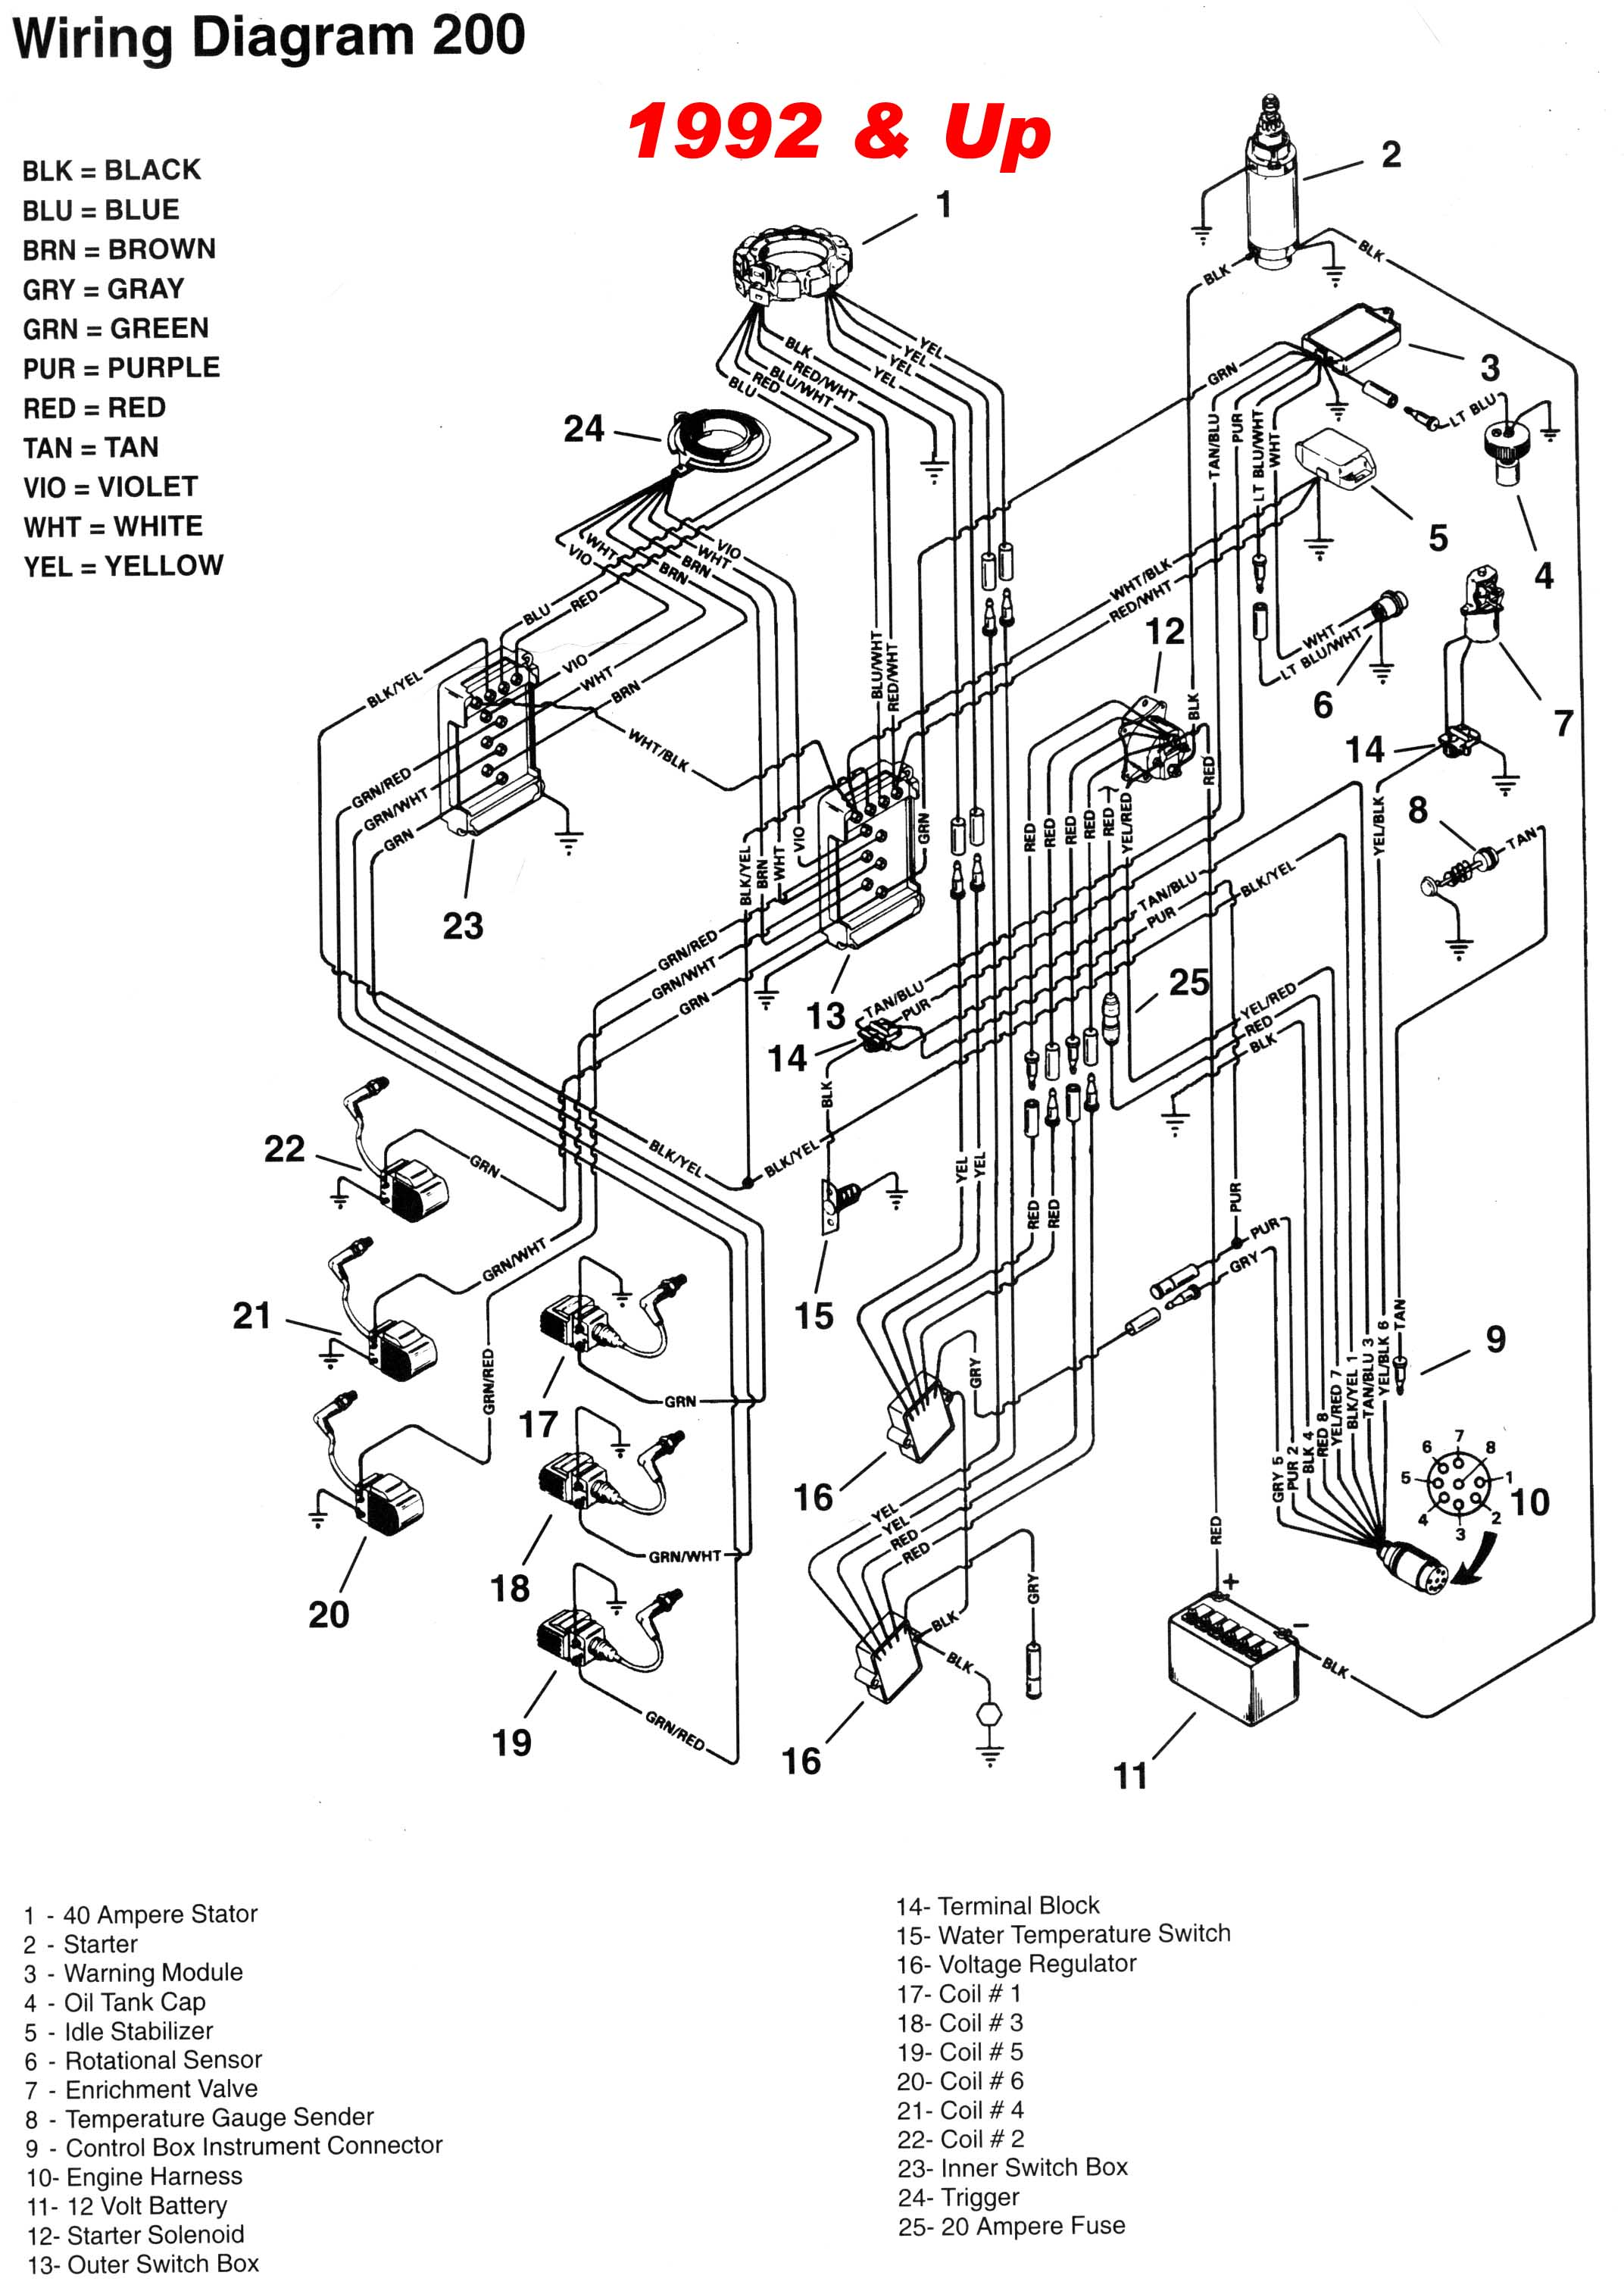 mercury_92up_200_wiring mercury outboard 2 5 and 3 0l v6 and gearcase faq mercury 2 stroke outboard wiring diagram at crackthecode.co